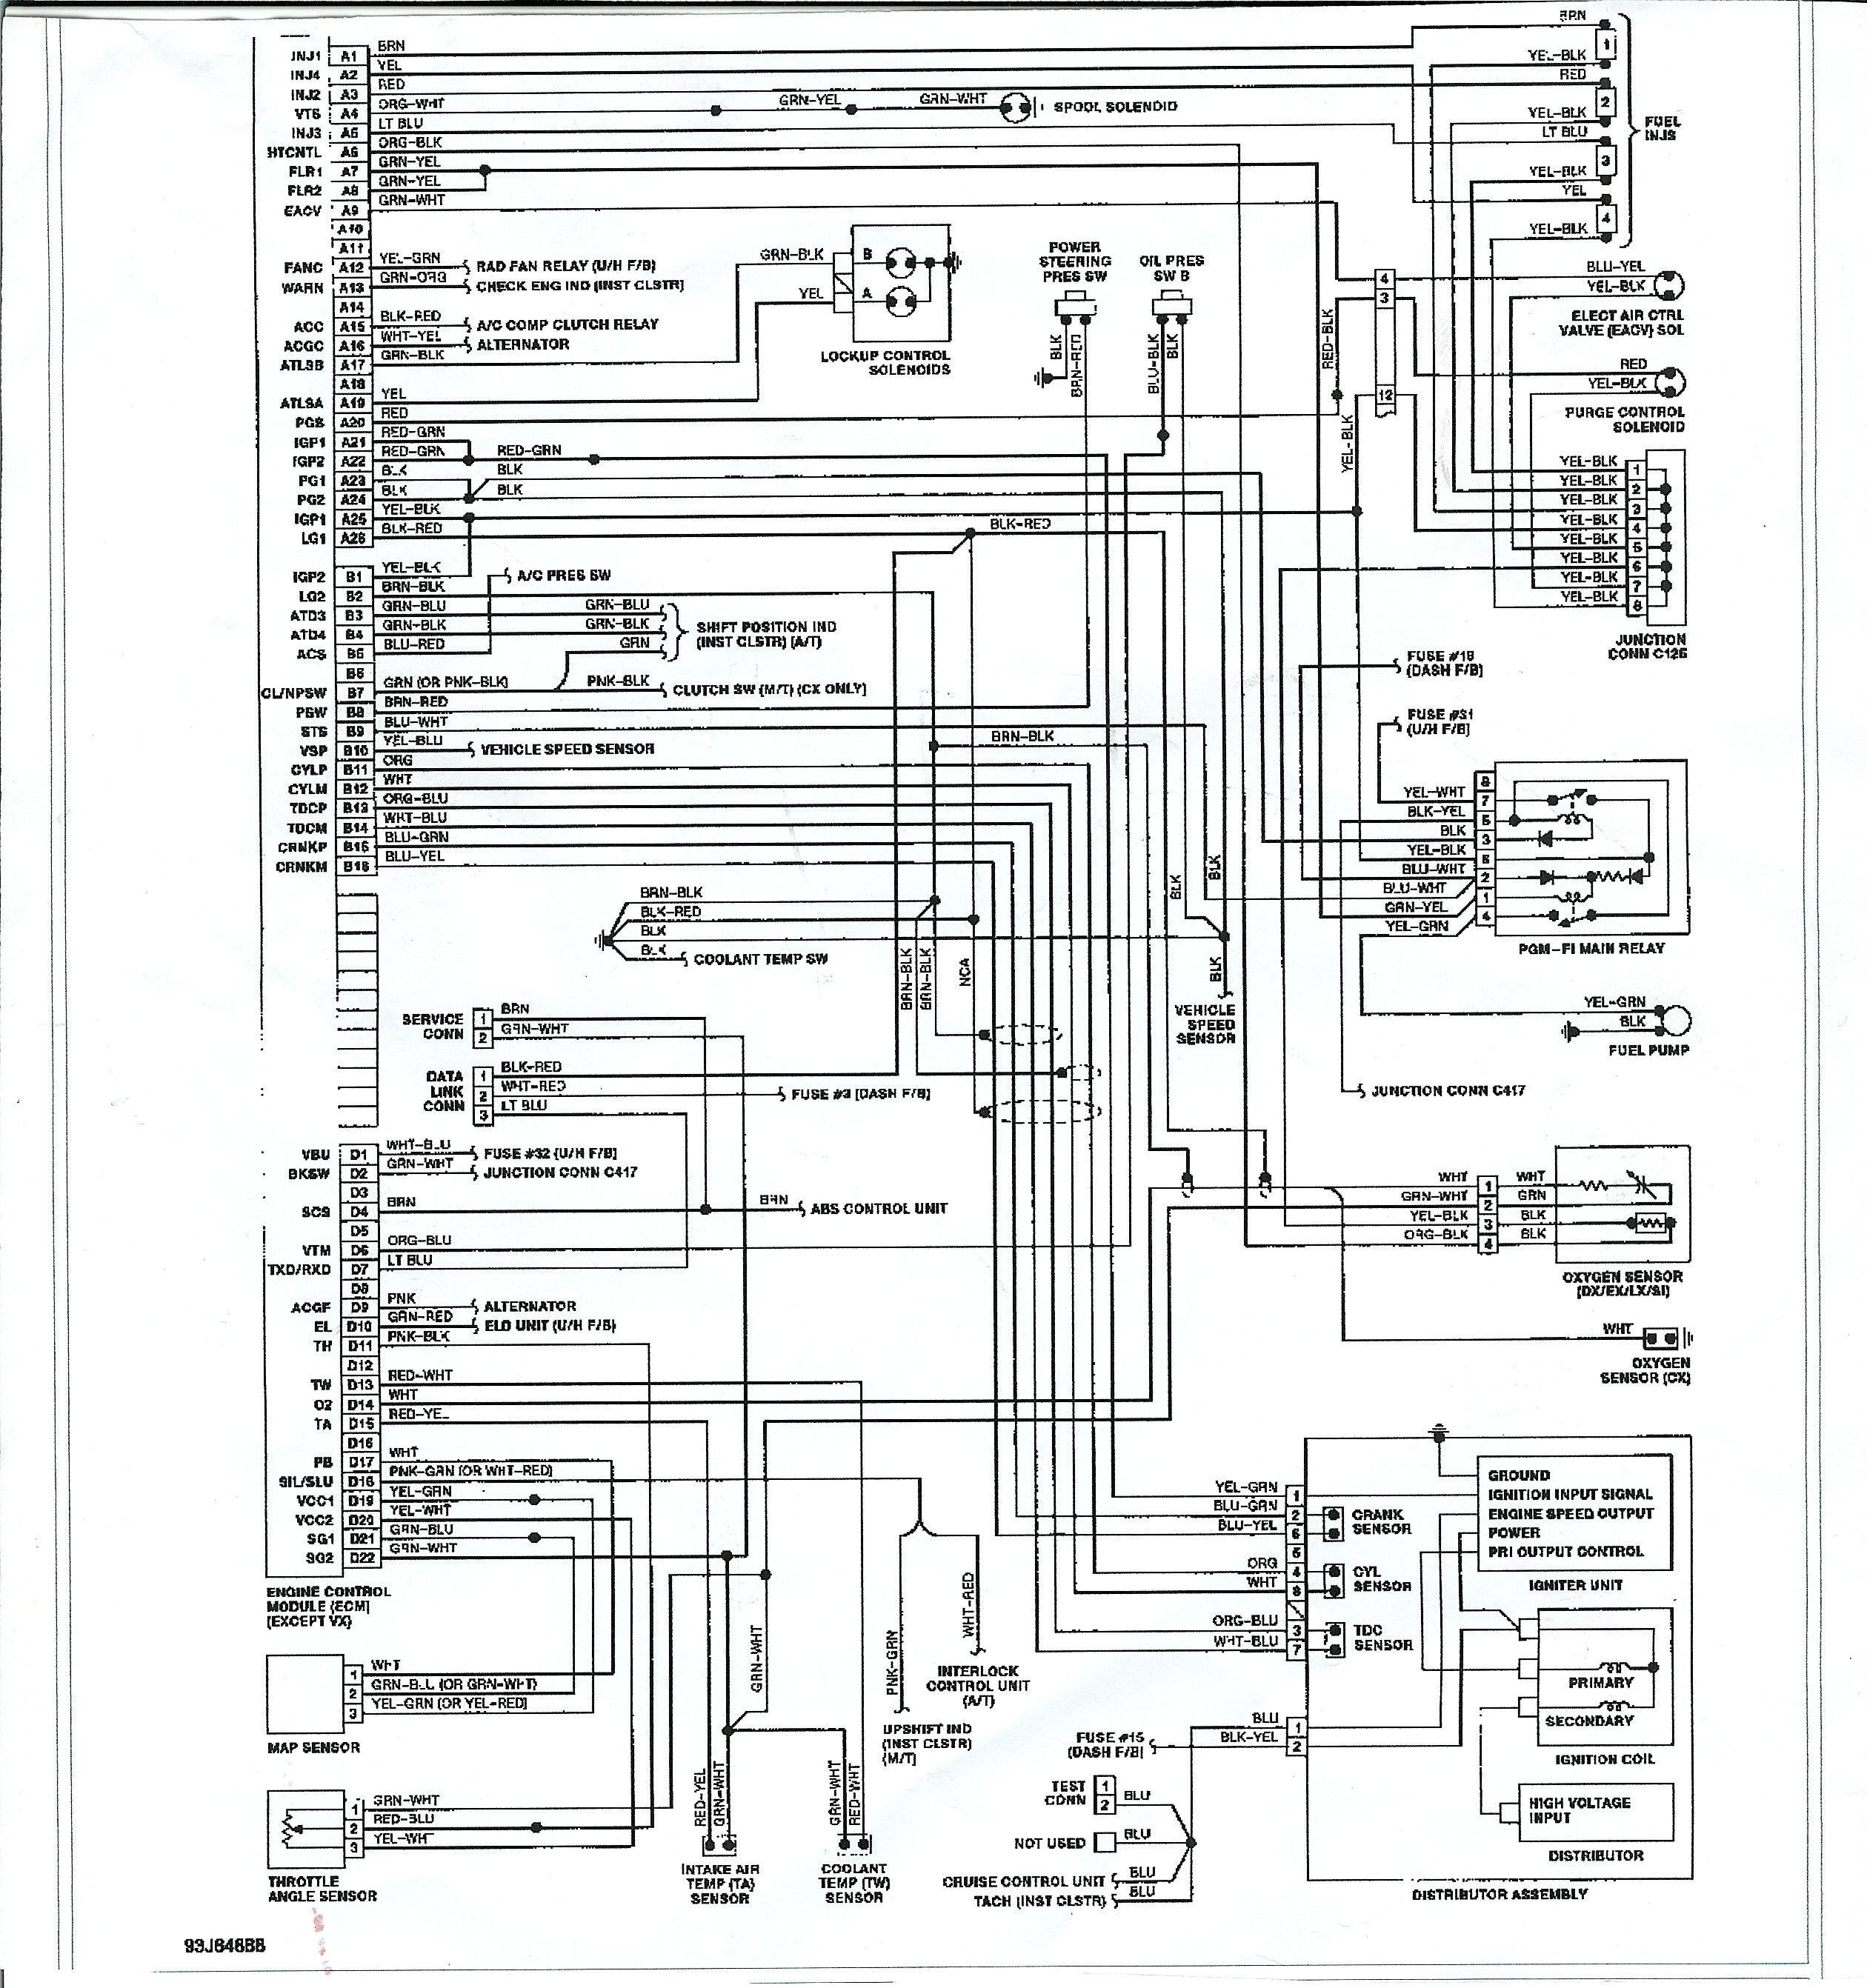 Unique Wiring Schematic Legend Diagram Wiringdiagram